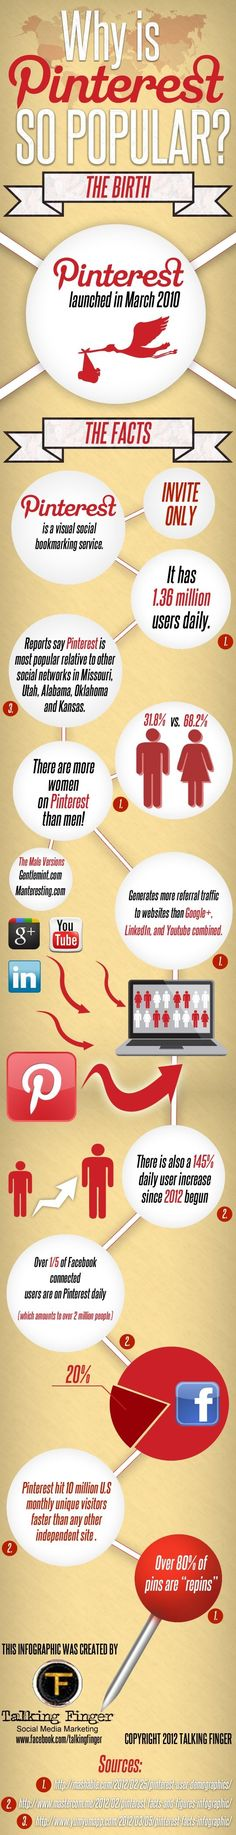 why is pinterest popular, get amazing facts at basicsofseo.webs.com